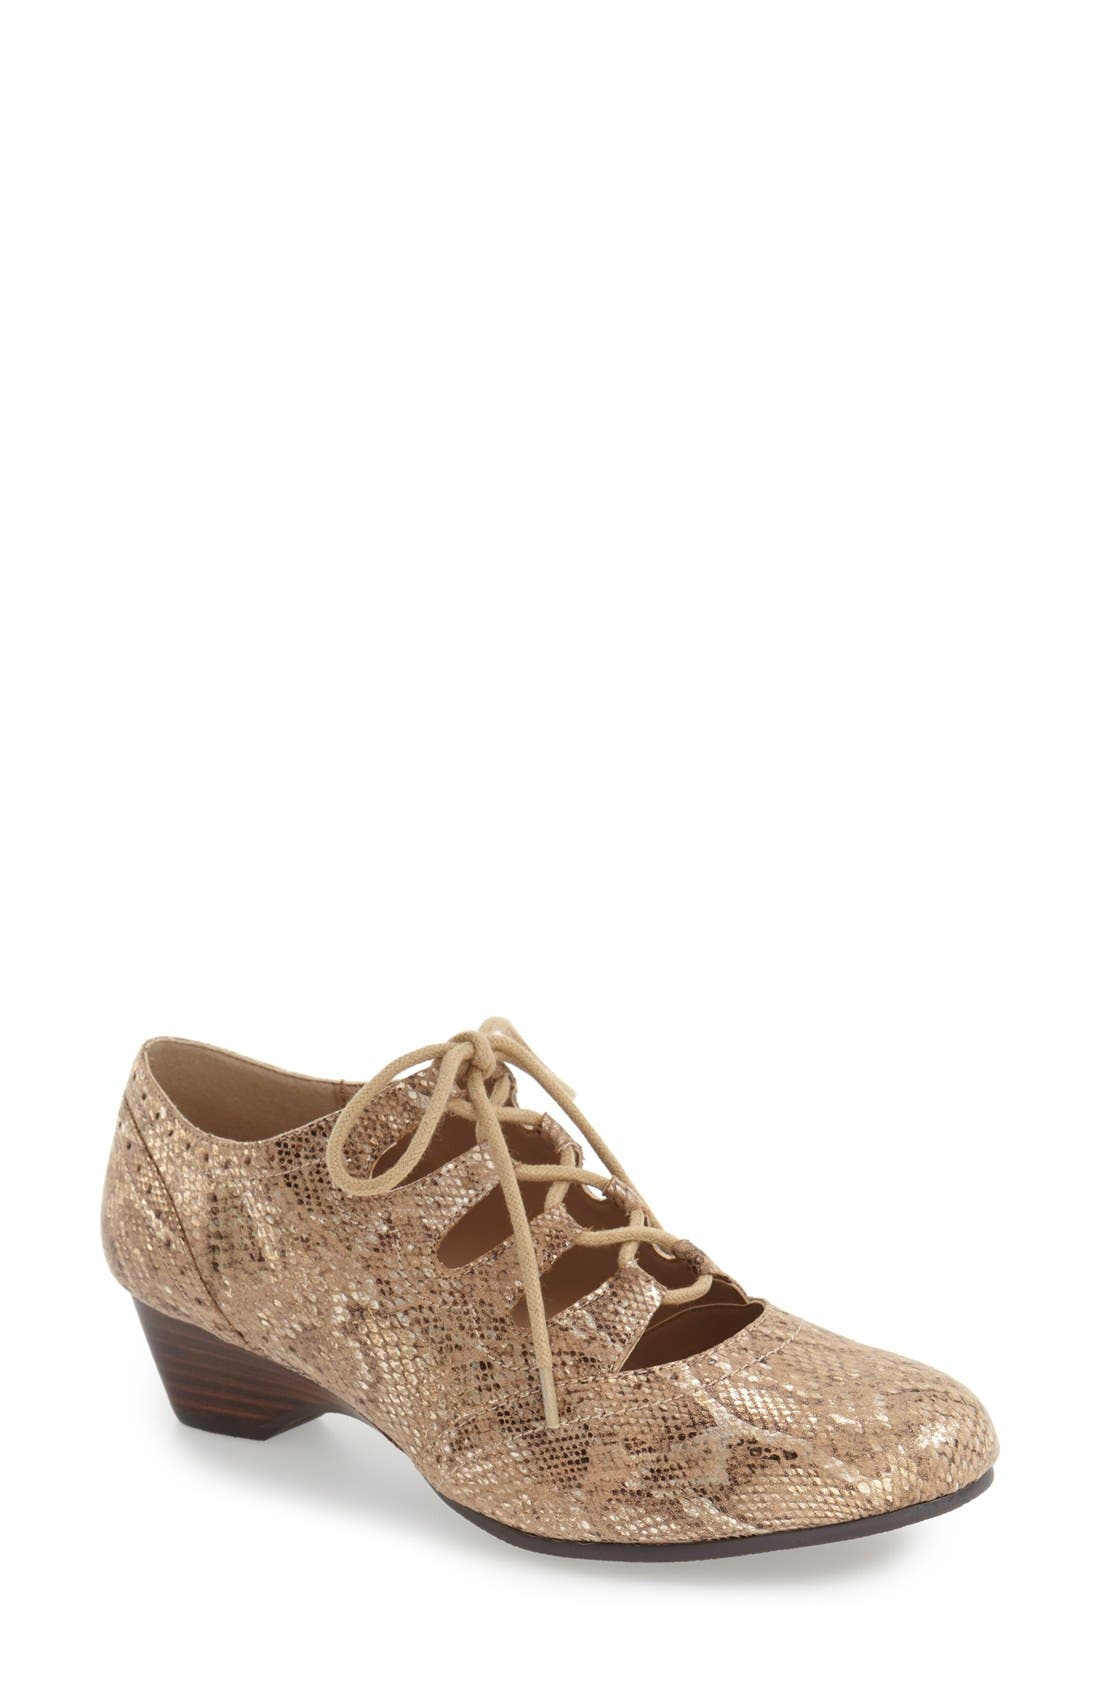 Posie Ghillie Oxford,                         Main,                         color, CHAMPAGNE METALLIC SNAKE